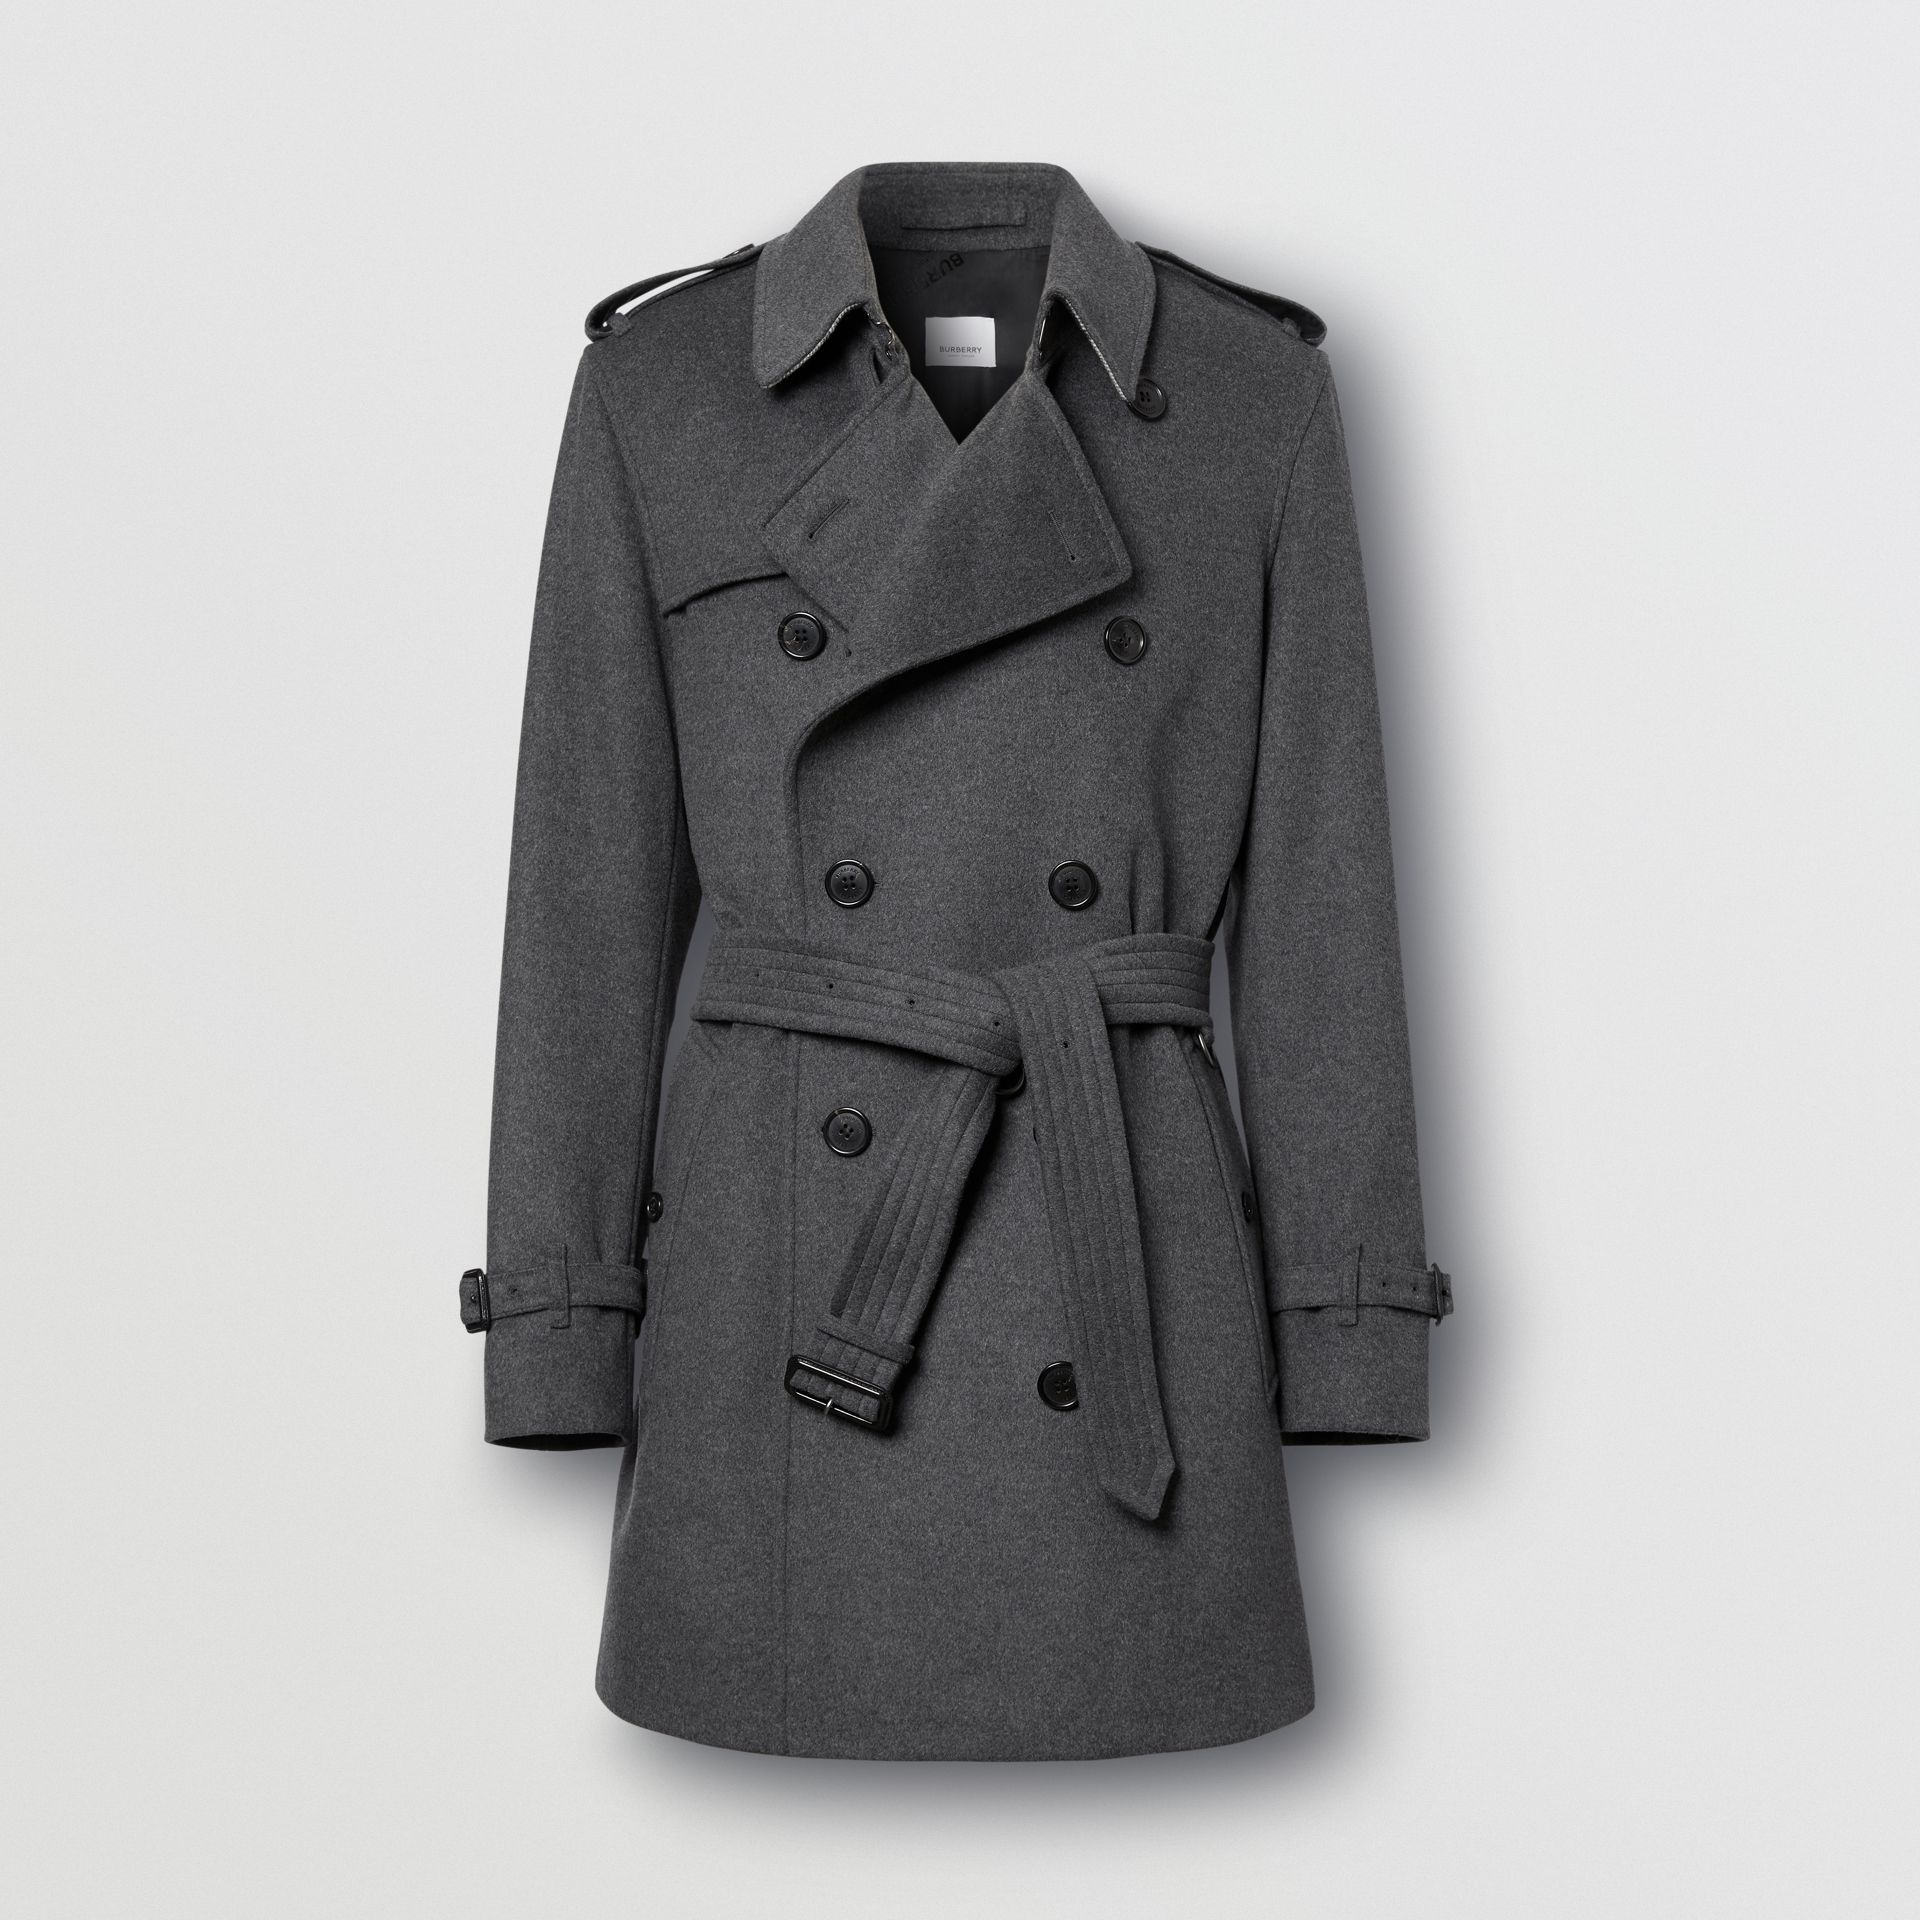 Wool Cashmere Trench Coat in Charcoal - Men | Burberry - gallery image 3